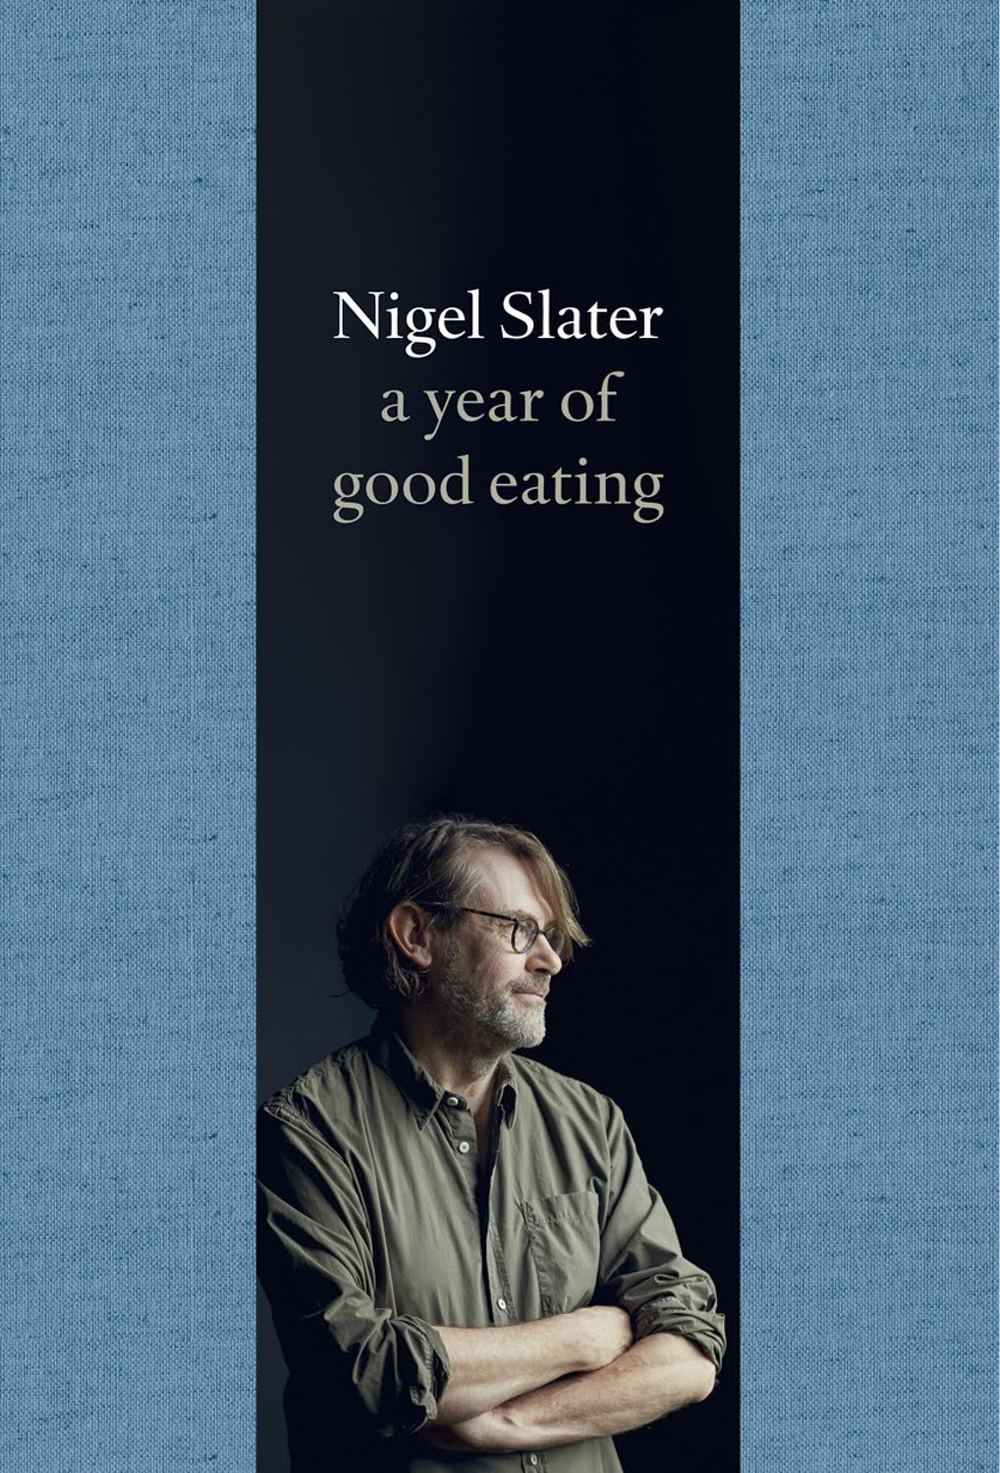 nigel slater | cover only